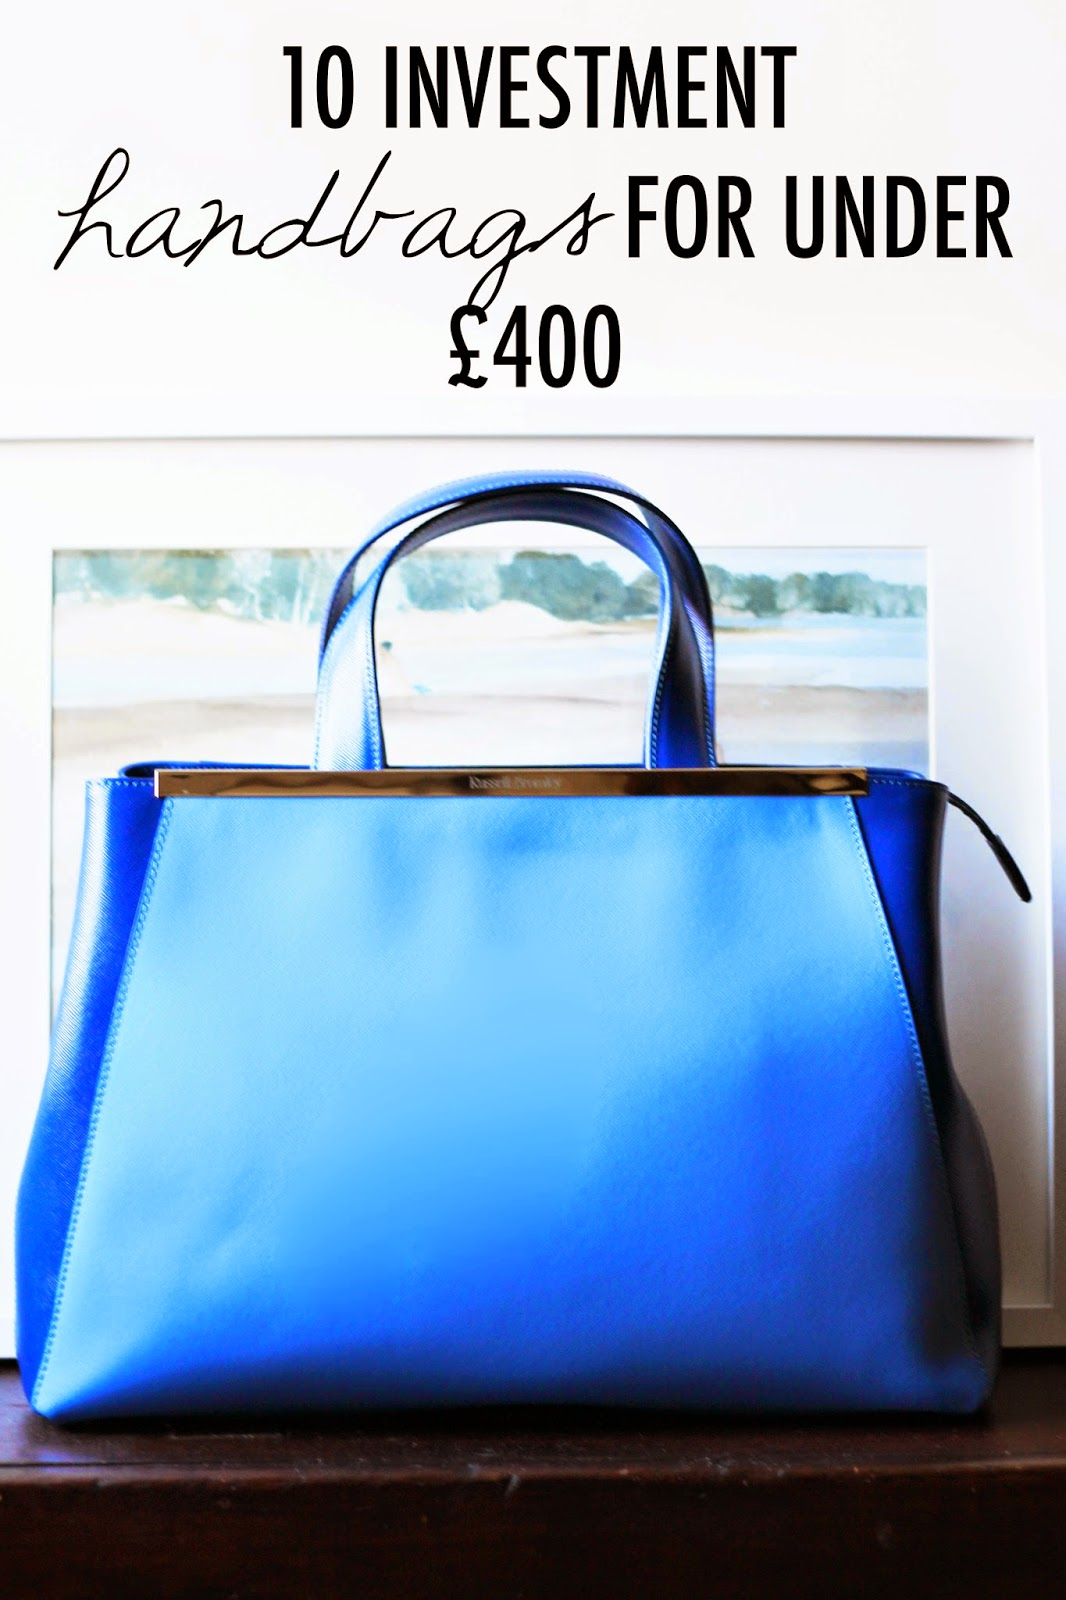 10 Investment Handbags For Under £400